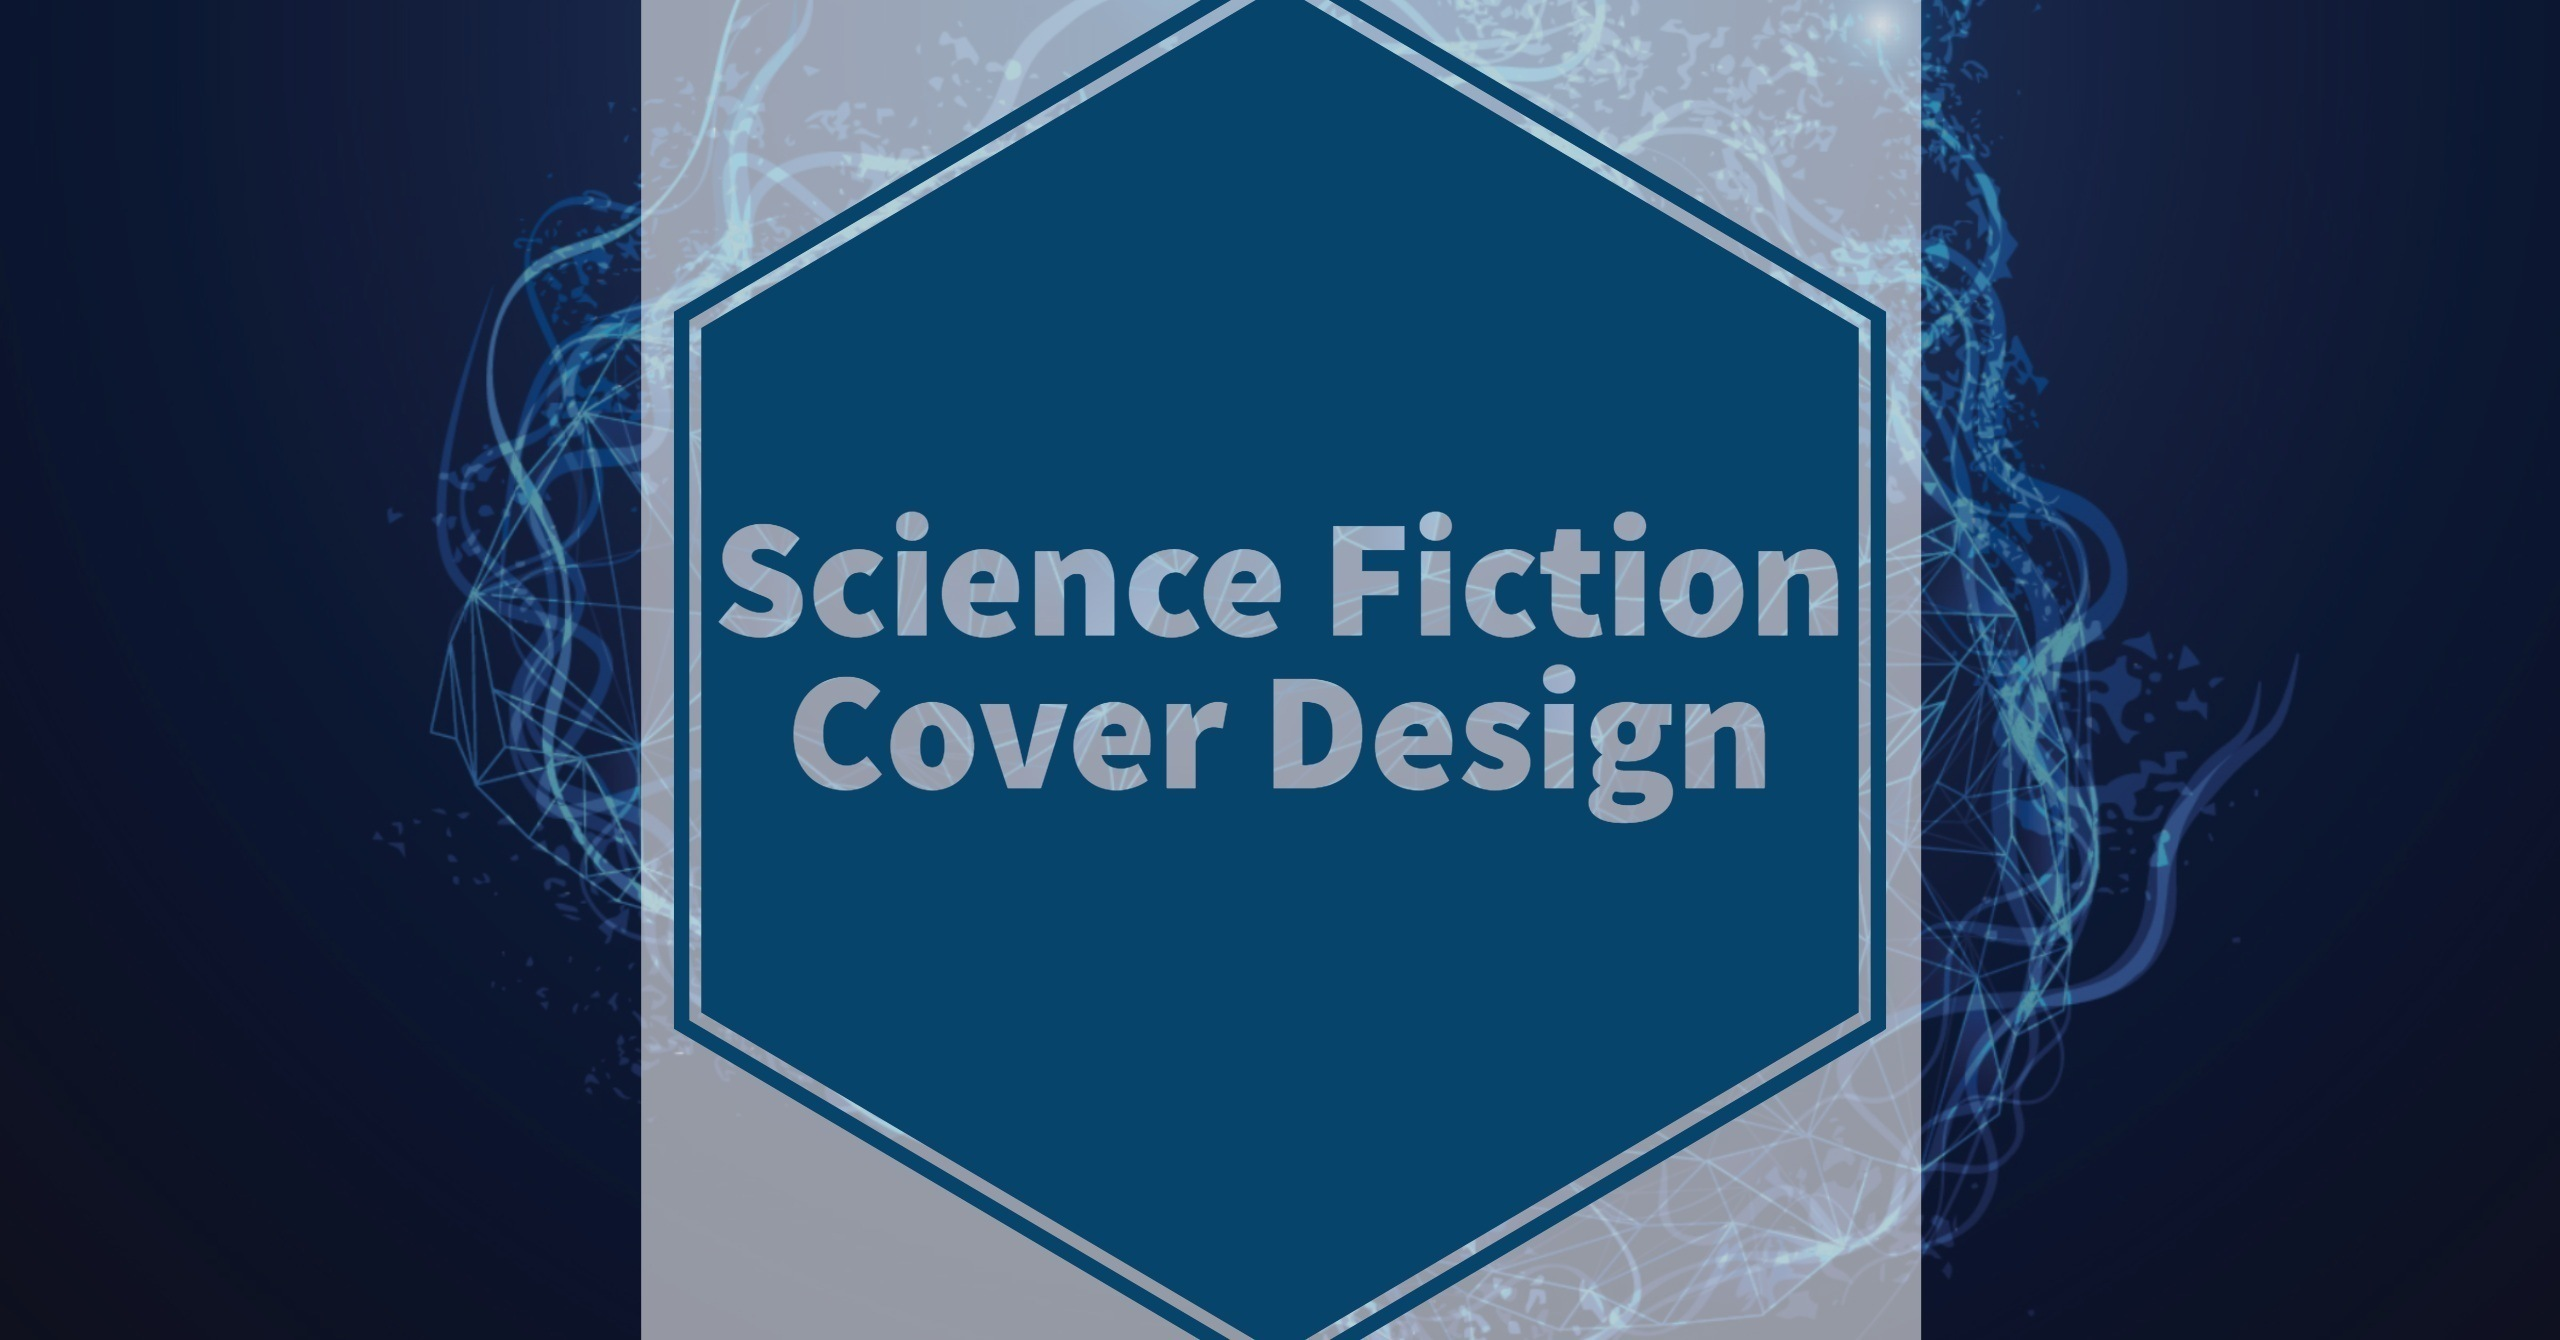 Science Fiction Cover Design